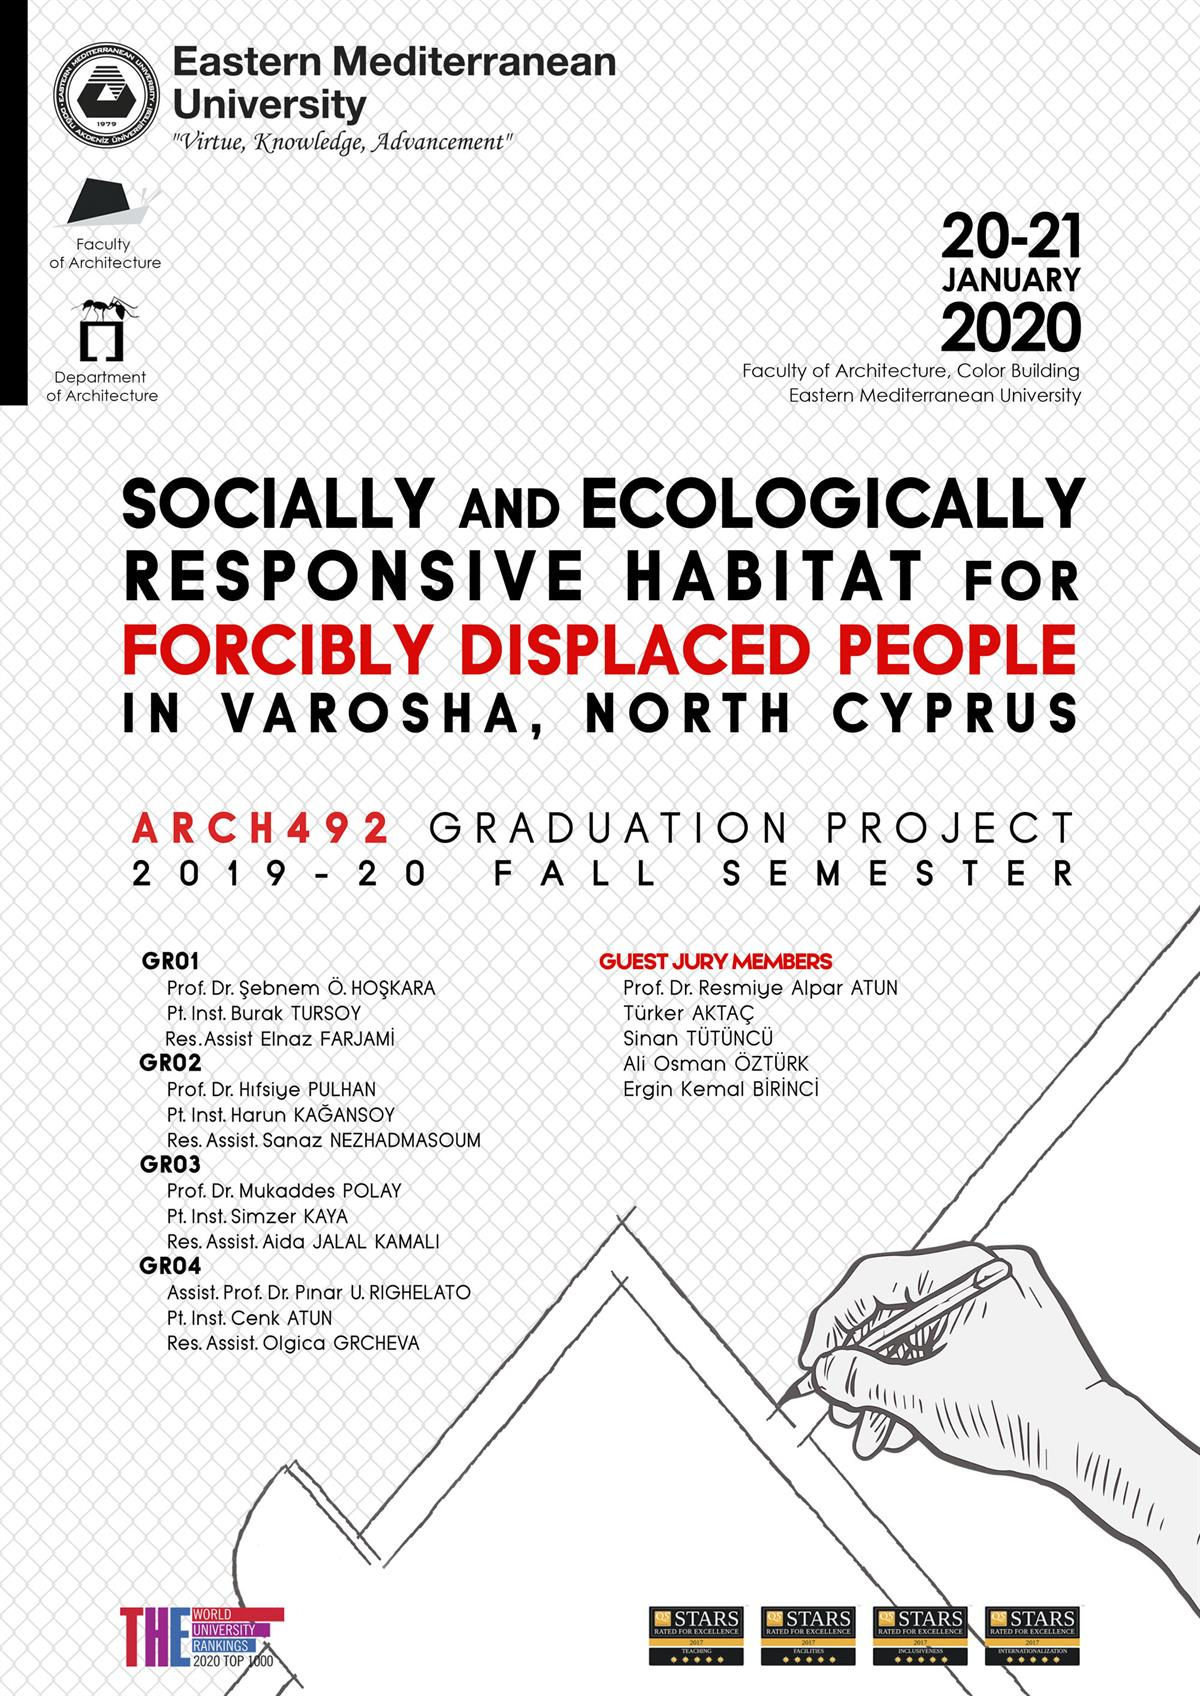 ARCH492 Graduation Project | Final Jury | Socially and Ecologically Responsive Habitat for Forcibly Displaced People in Varosha, North Cyprus